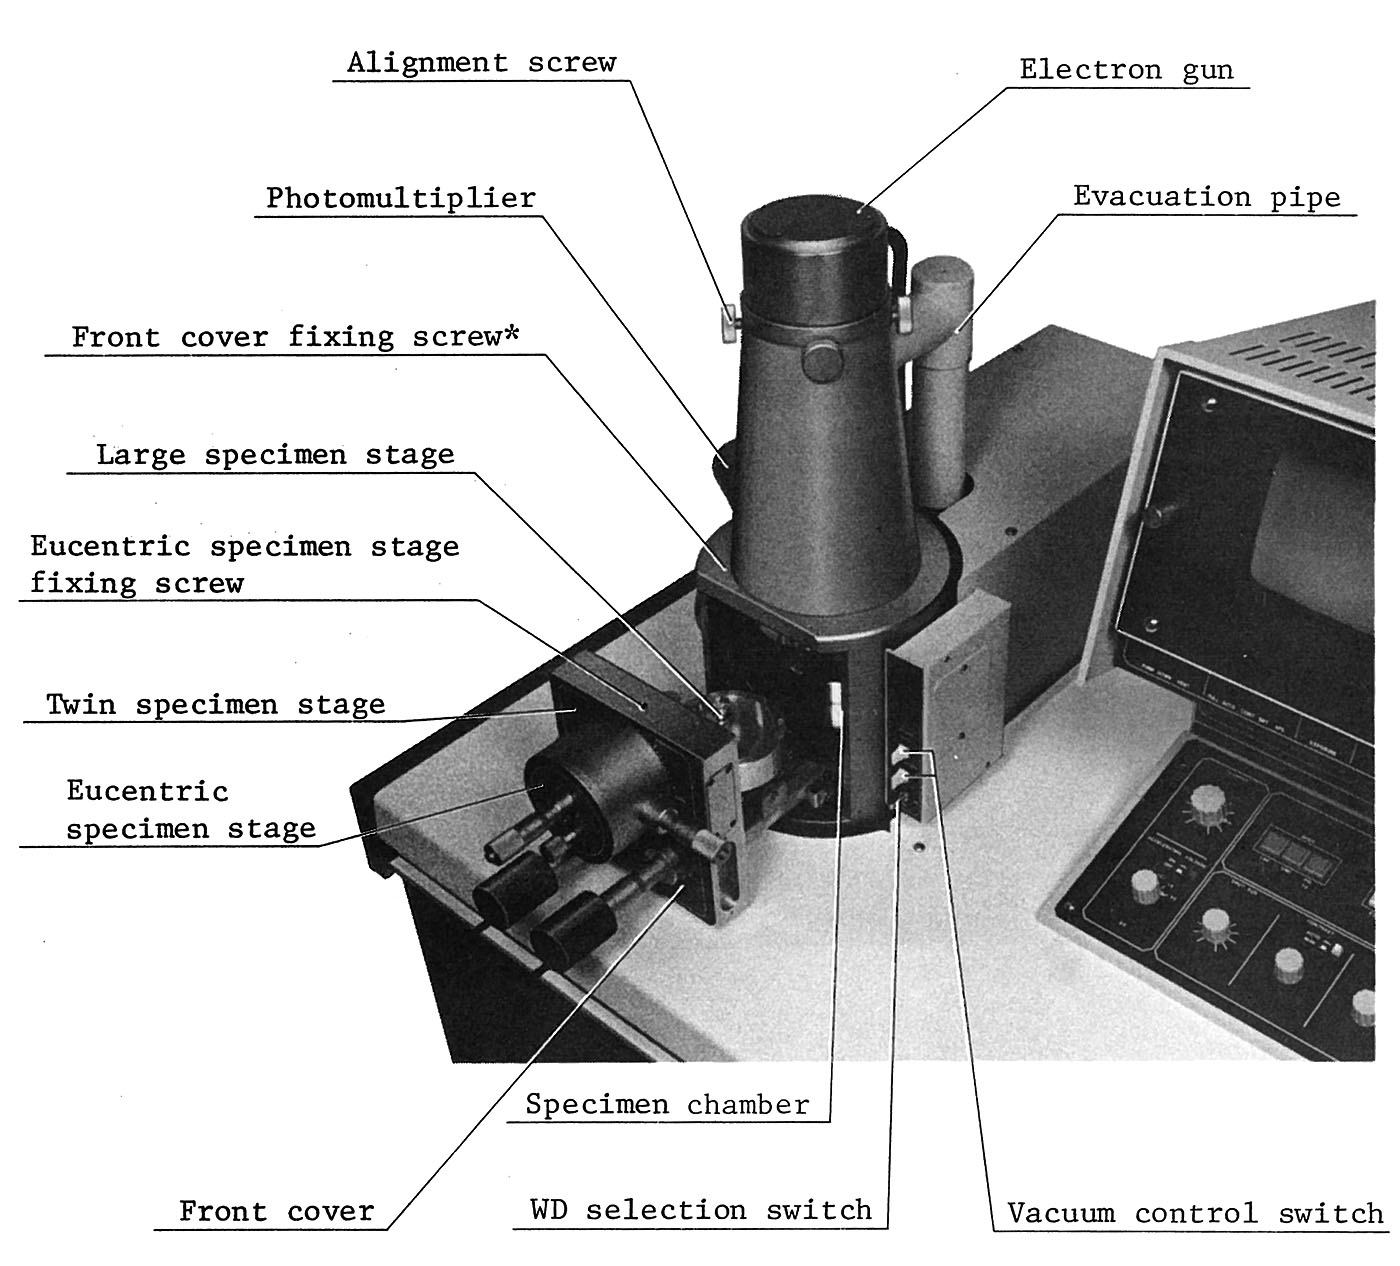 Scanning Electron Microscopy Sem At Home Microscope Wiring Diagram Photograph Of The Column And Sample Stage Controls Left Scanned Description Schematic Image From Original Jsm T200 Manual Right